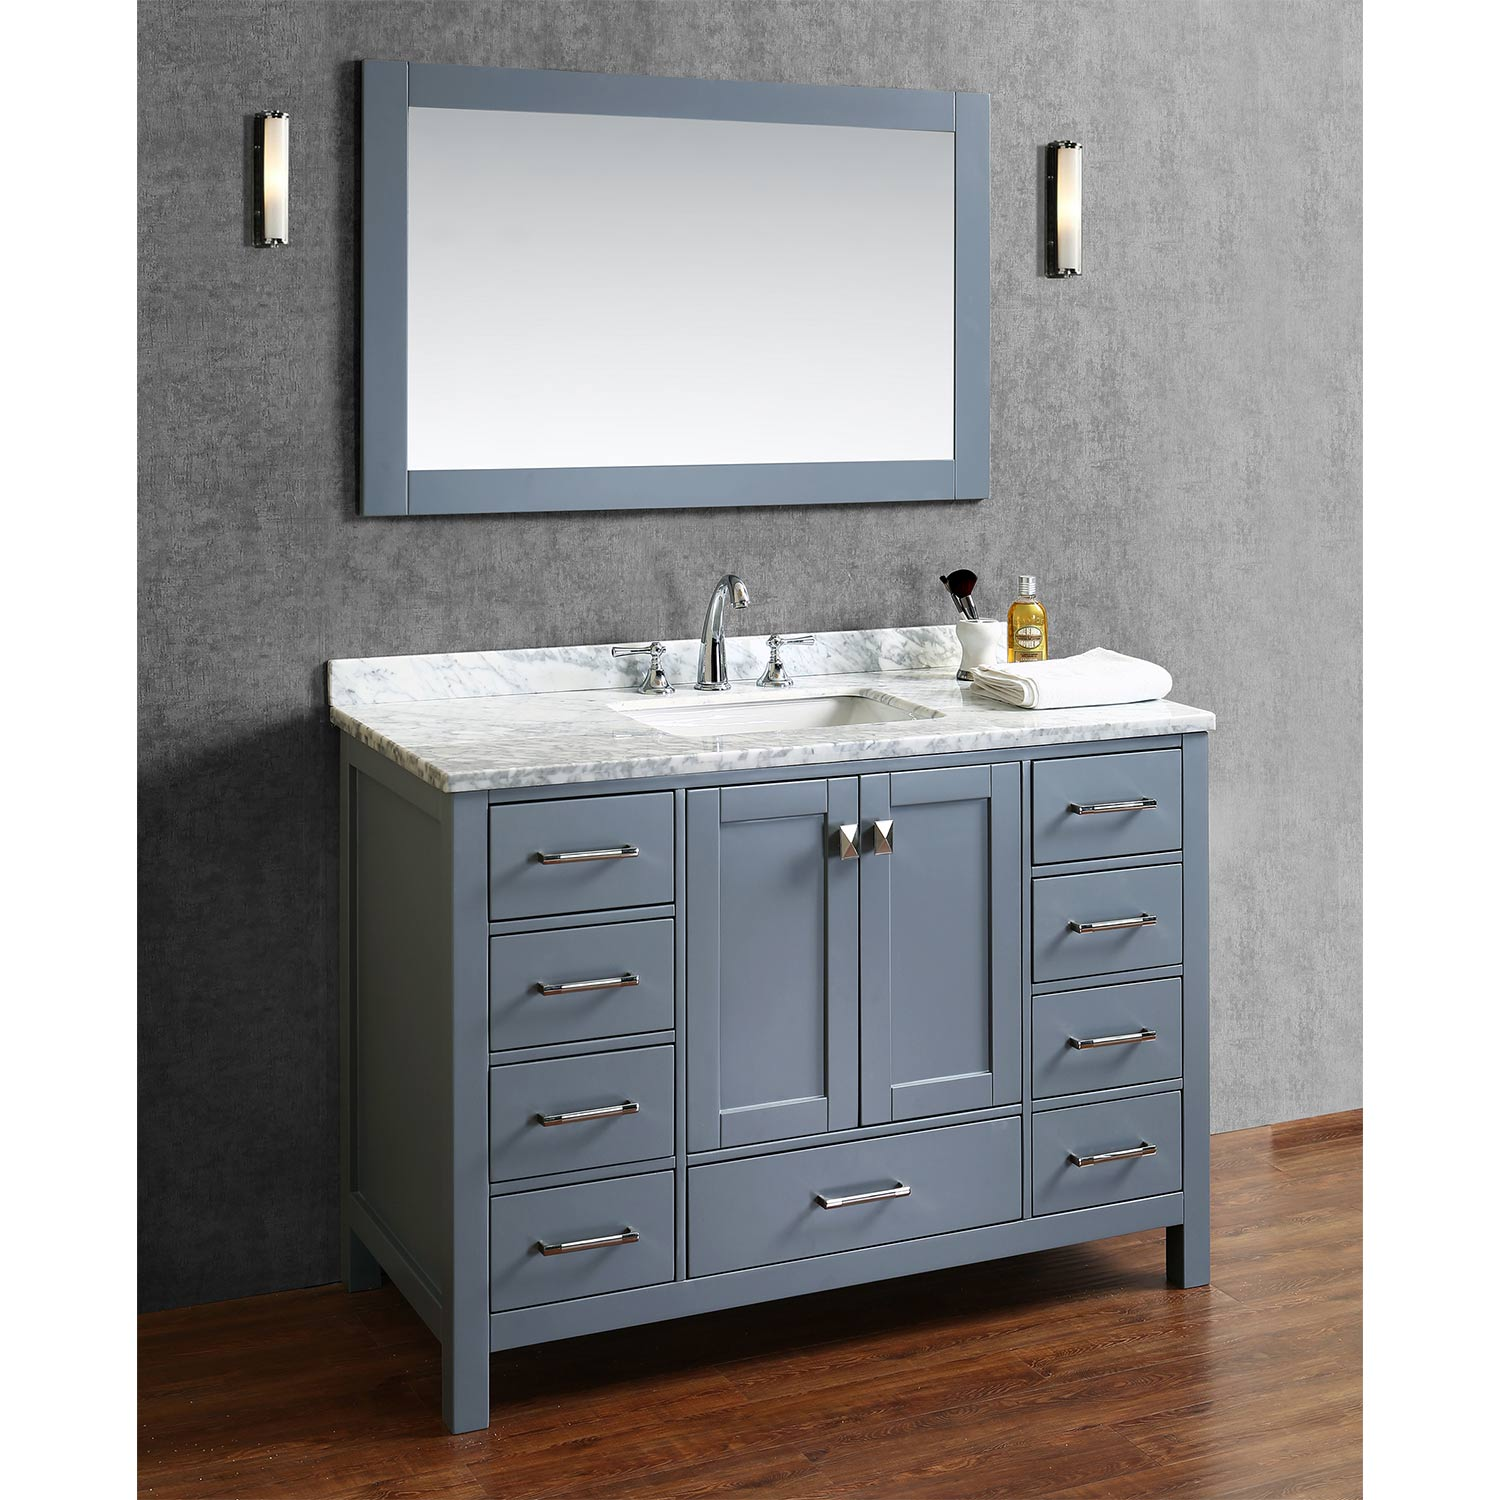 Buy Vincent 48 Inch Solid Wood Single Bathroom Vanity In Charcoal Grey Hm 13001 48 Wmsq Cg